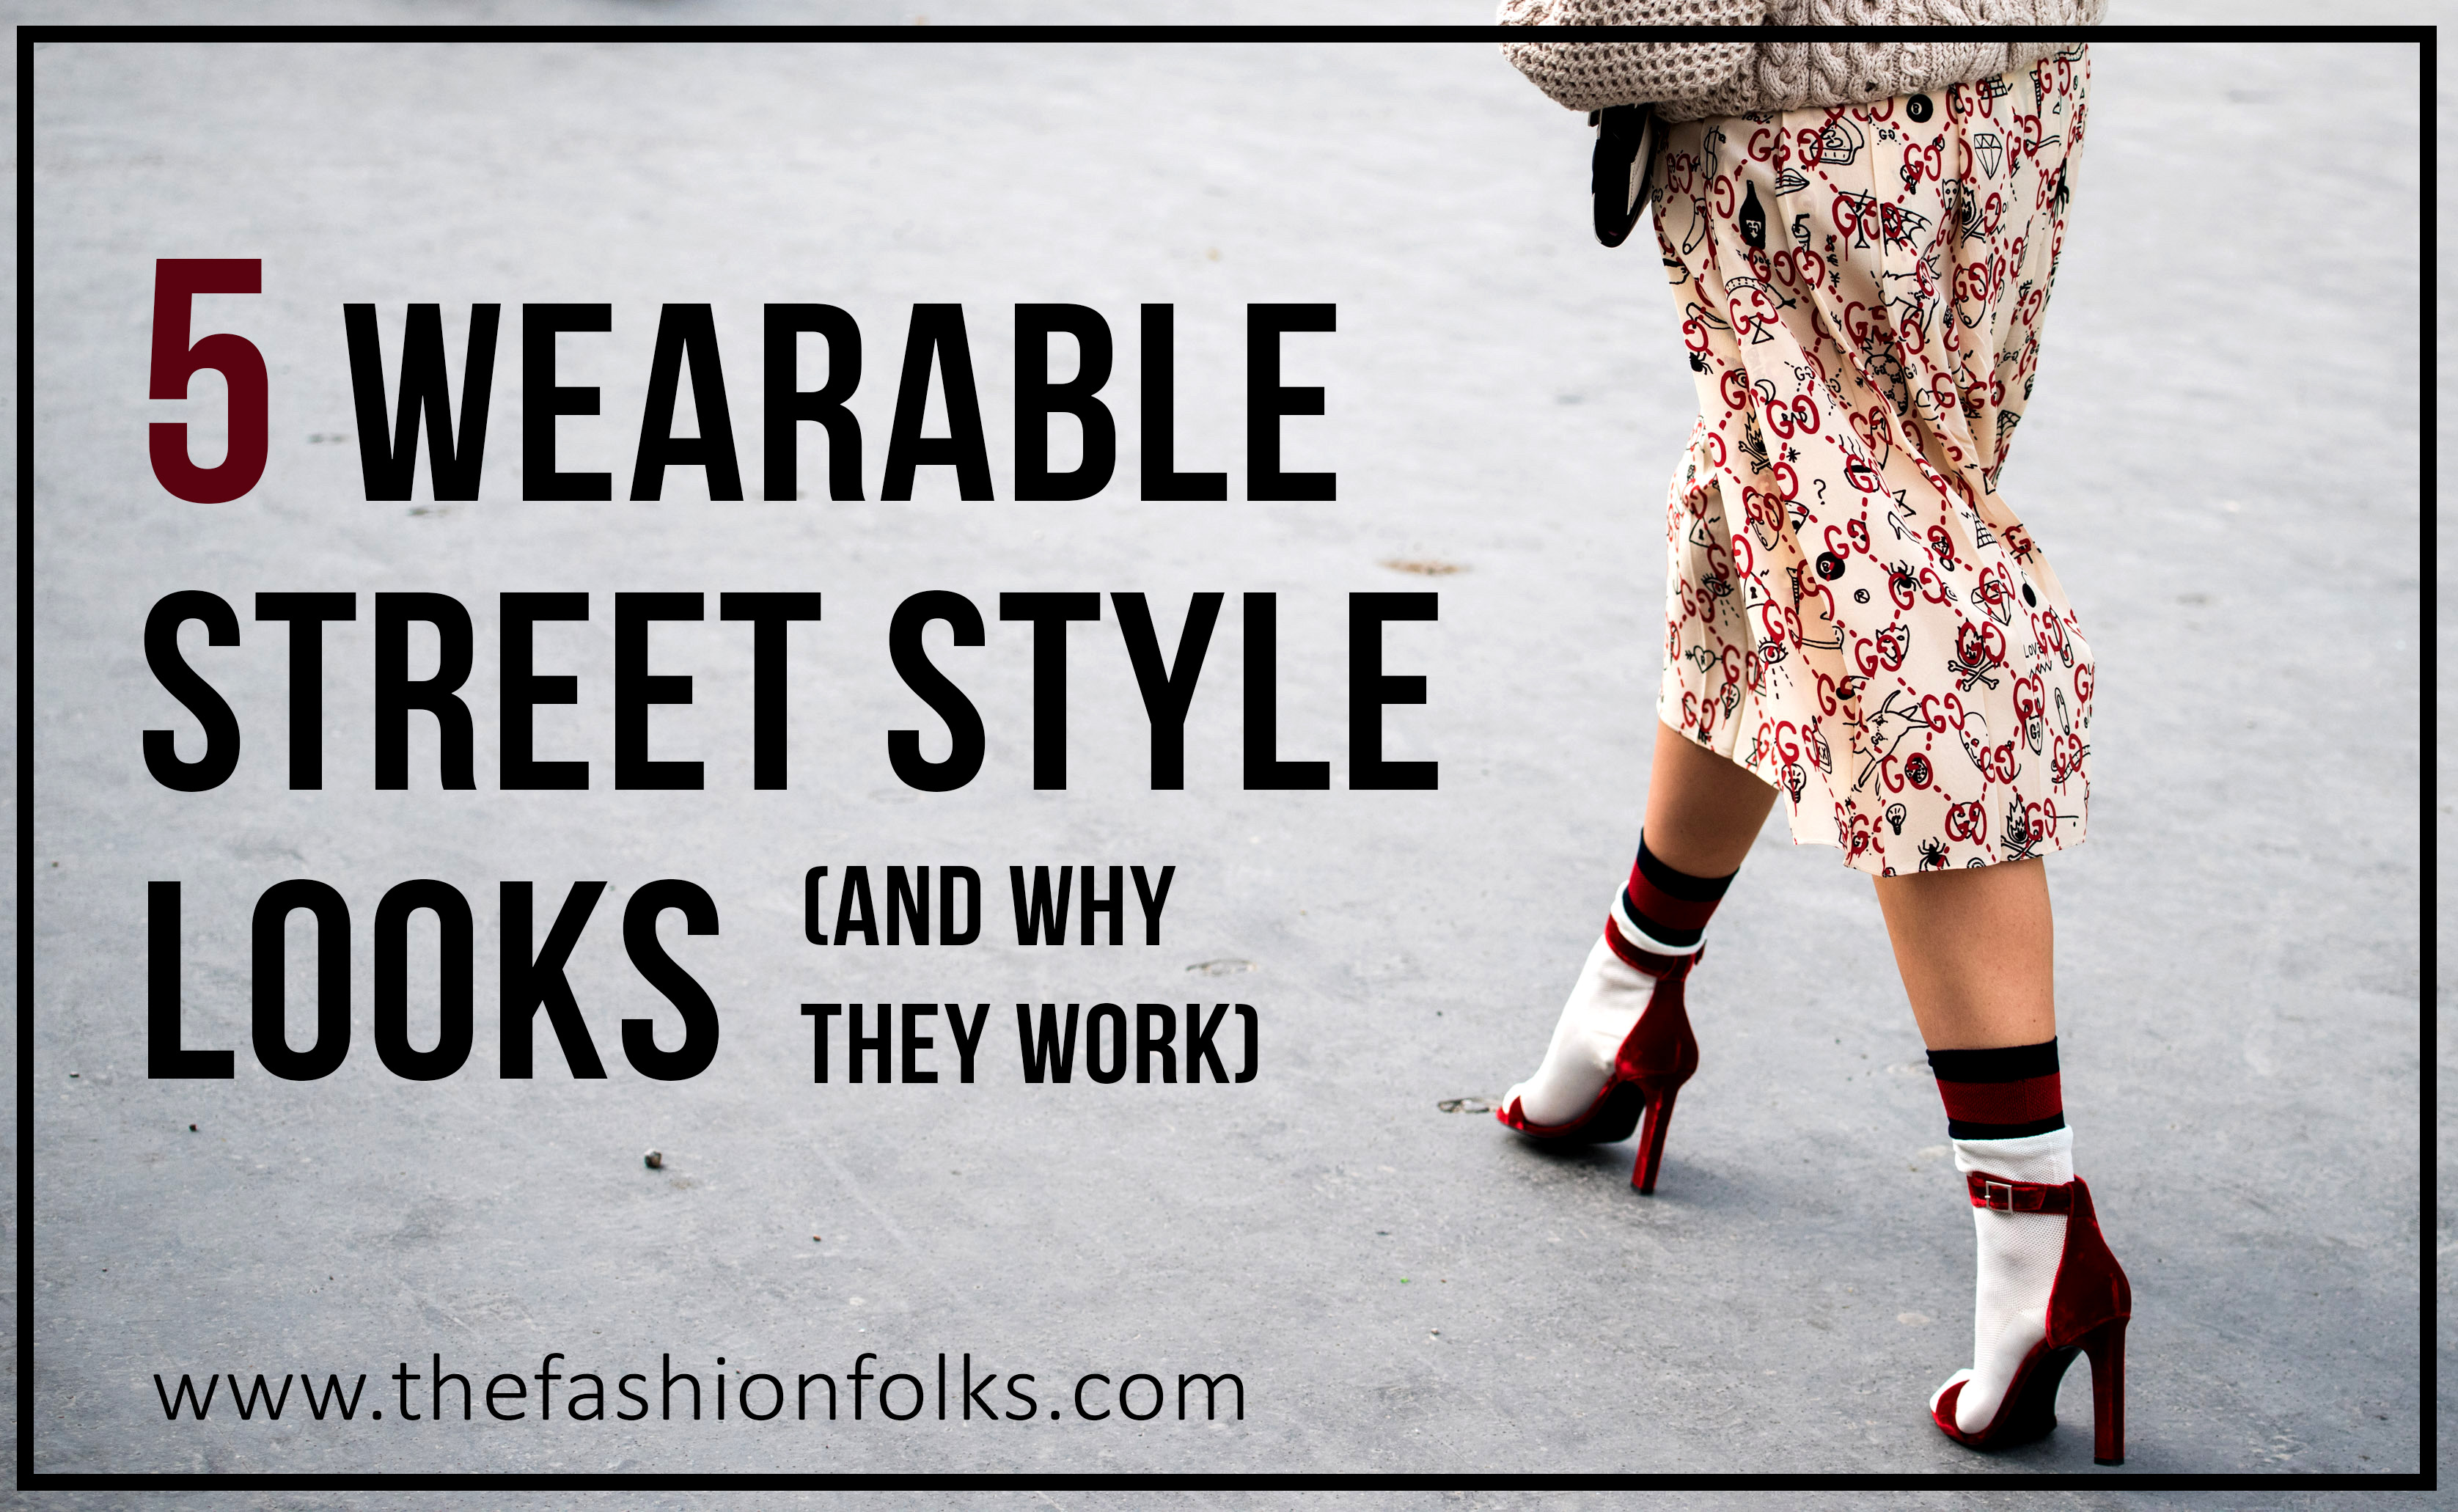 5 Wearable Street Style Looks And Why They Work + outfit inspiration from the fashion weeks | The Fashion Folks